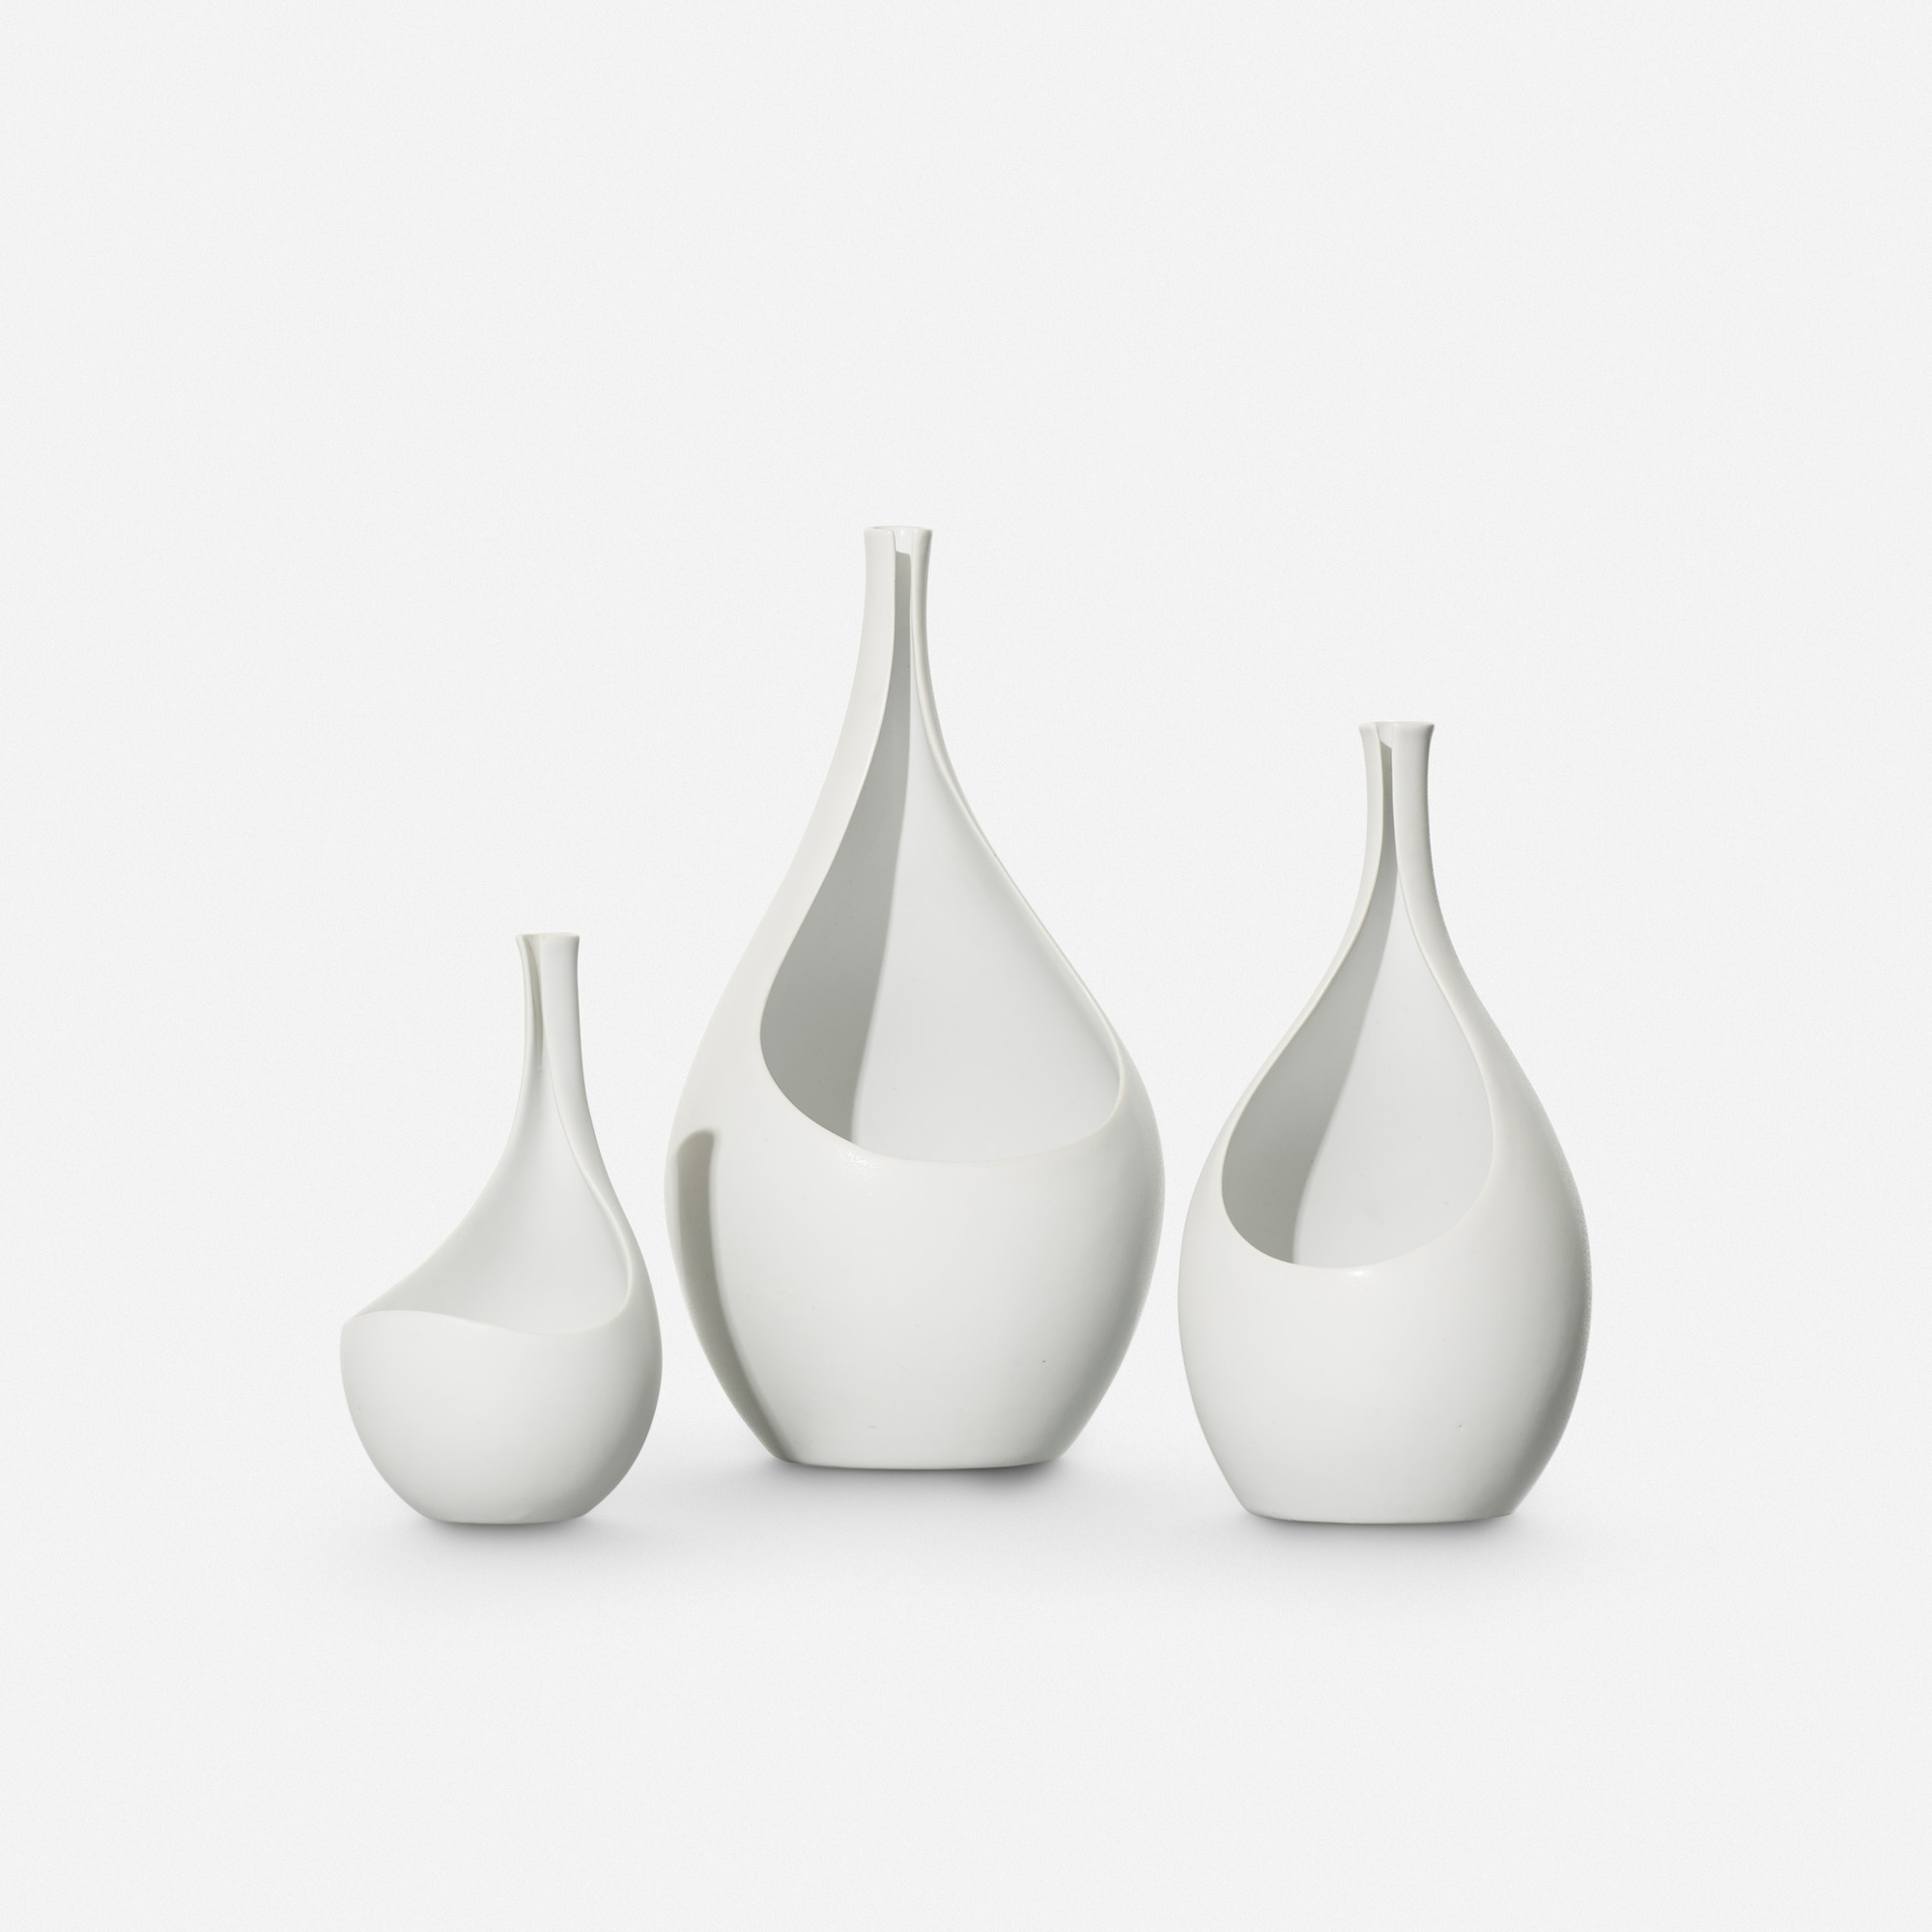 512: Stig Lindberg / collection of three Pungo vases (1 of 1)